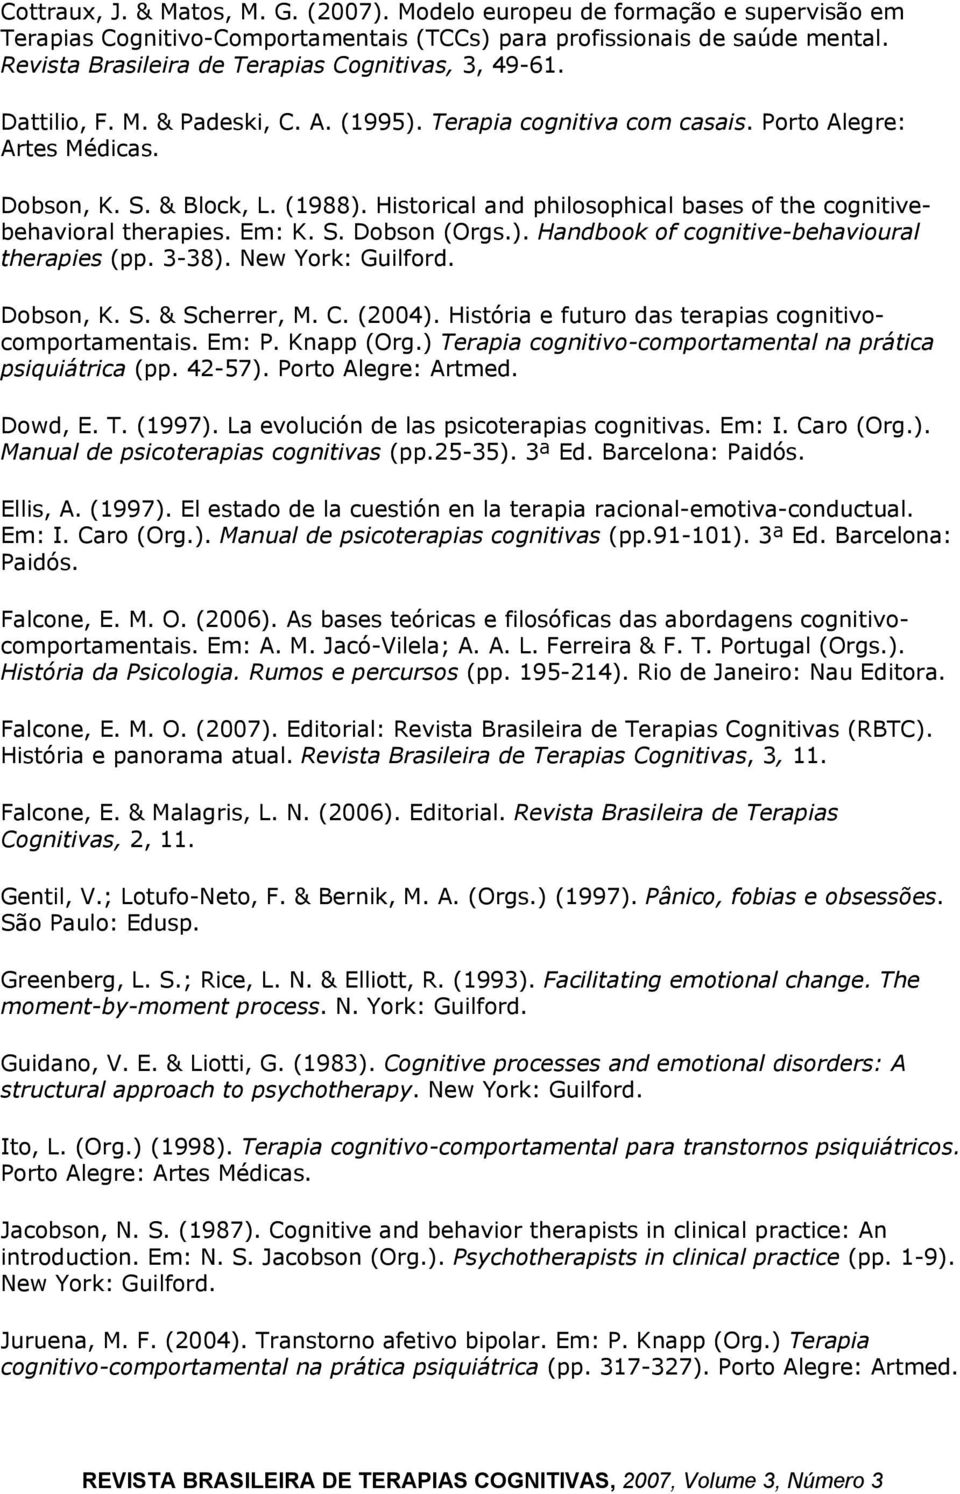 Historical and philosophical bases of the cognitivebehavioral therapies. Em: K. S. Dobson (Orgs.). Handbook of cognitive-behavioural therapies (pp. 3-38). New York: Guilford. Dobson, K. S. & Scherrer, M.